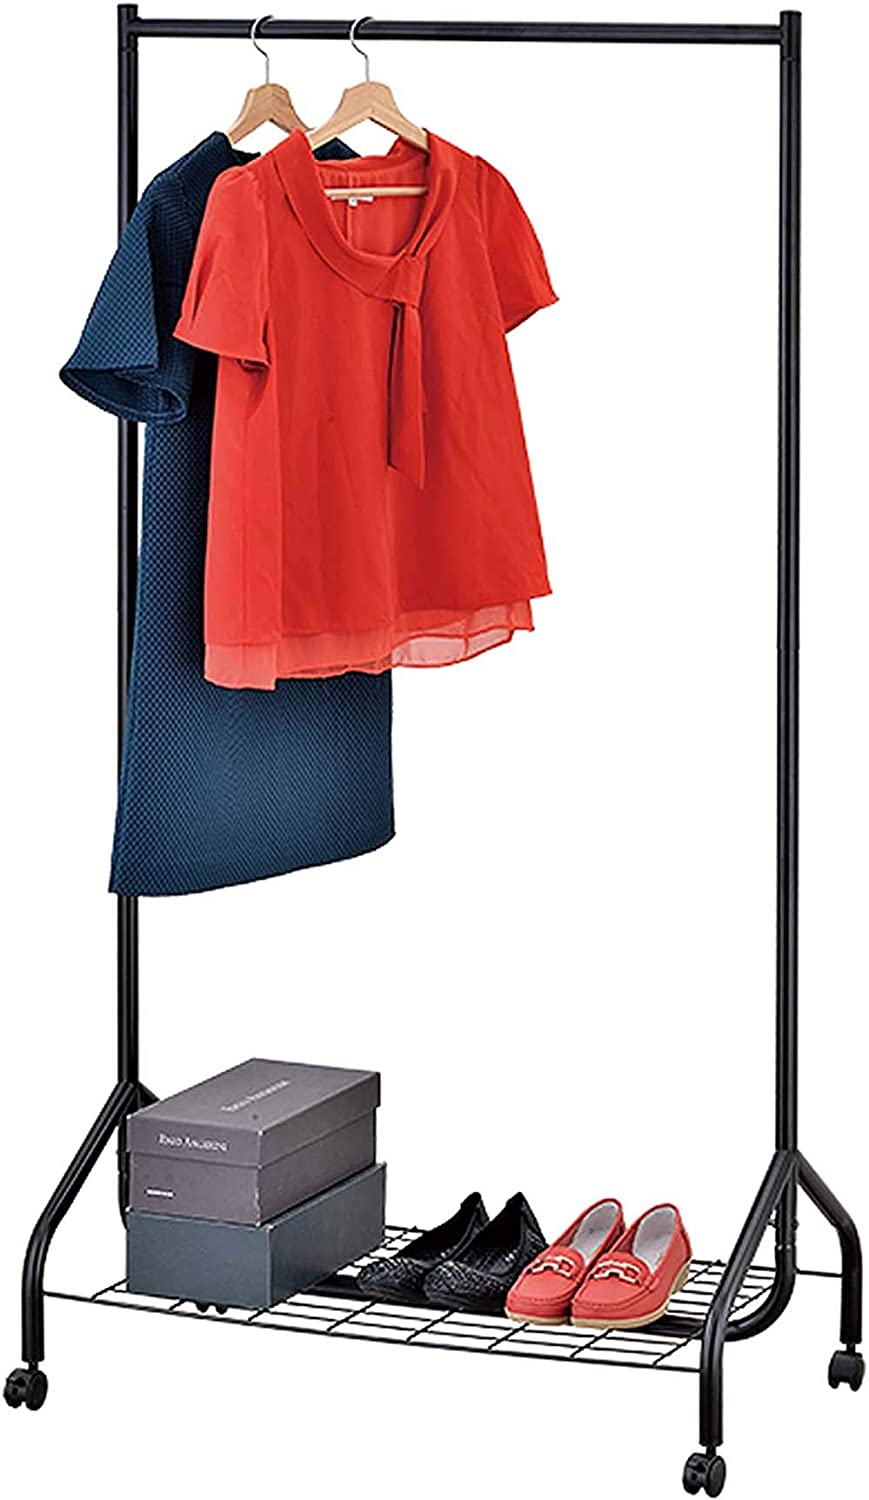 Beaugreen All-Around Garment Rack favorite Clothing Free Shipping New Clothes Organize